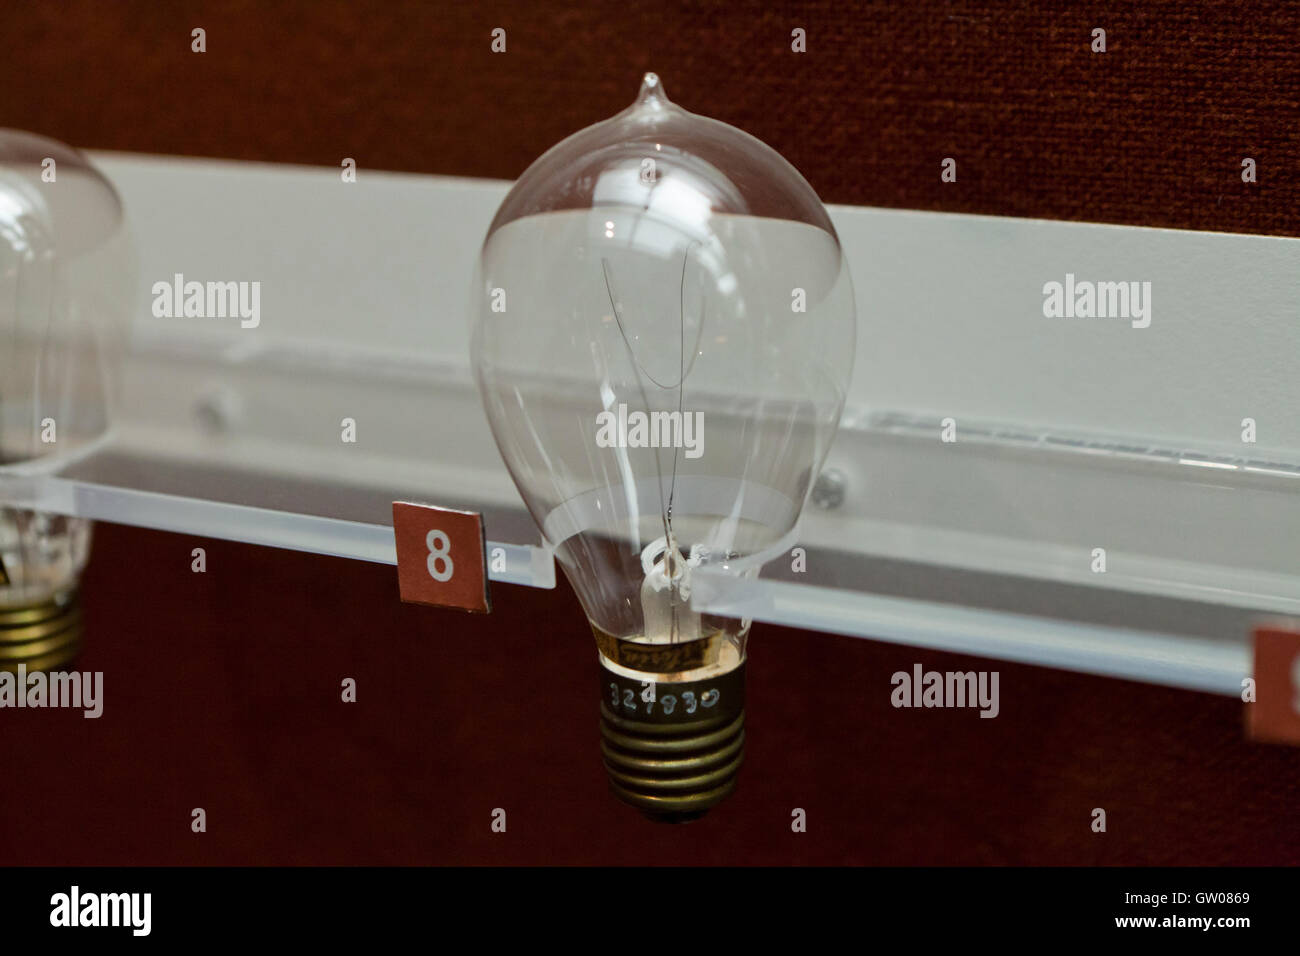 Carbon Filament Stock Photos Images Alamy Besides Incandescent Light Bulbs On Bulb Diagram Antique Image